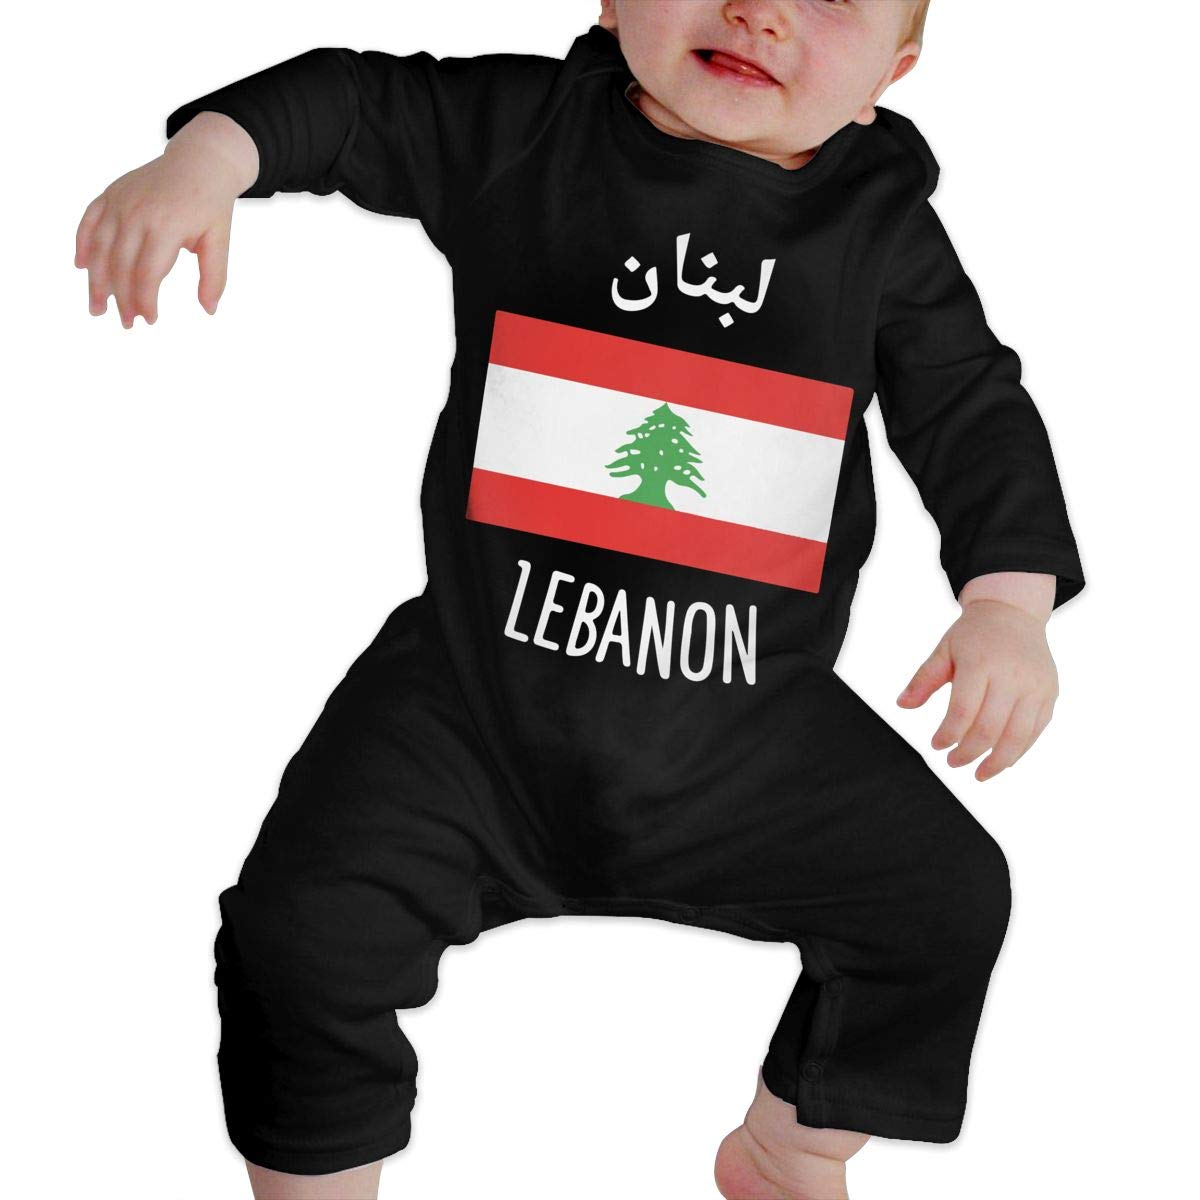 LBJQ8 Lebanon Flag Newborn Kids Baby Boys Essential Basic Romper Jumpsuit Bodysuit